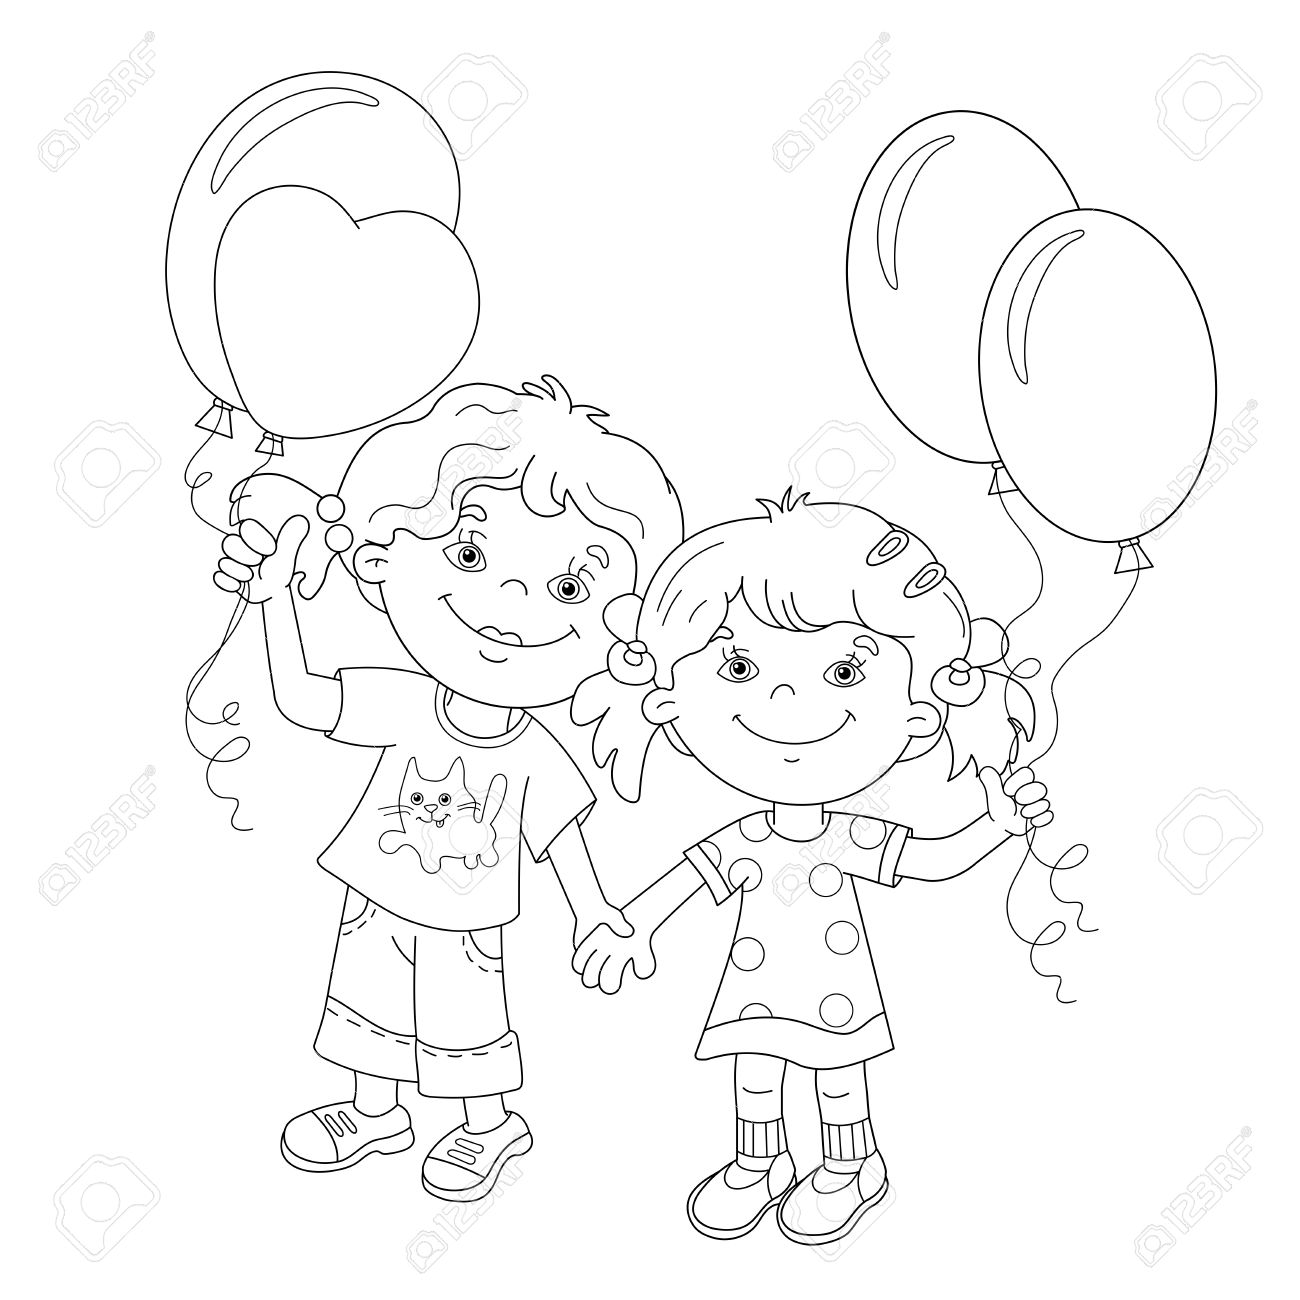 Coloring Page Outline Of Cartoon Girls Holding Hands With Balloons ...